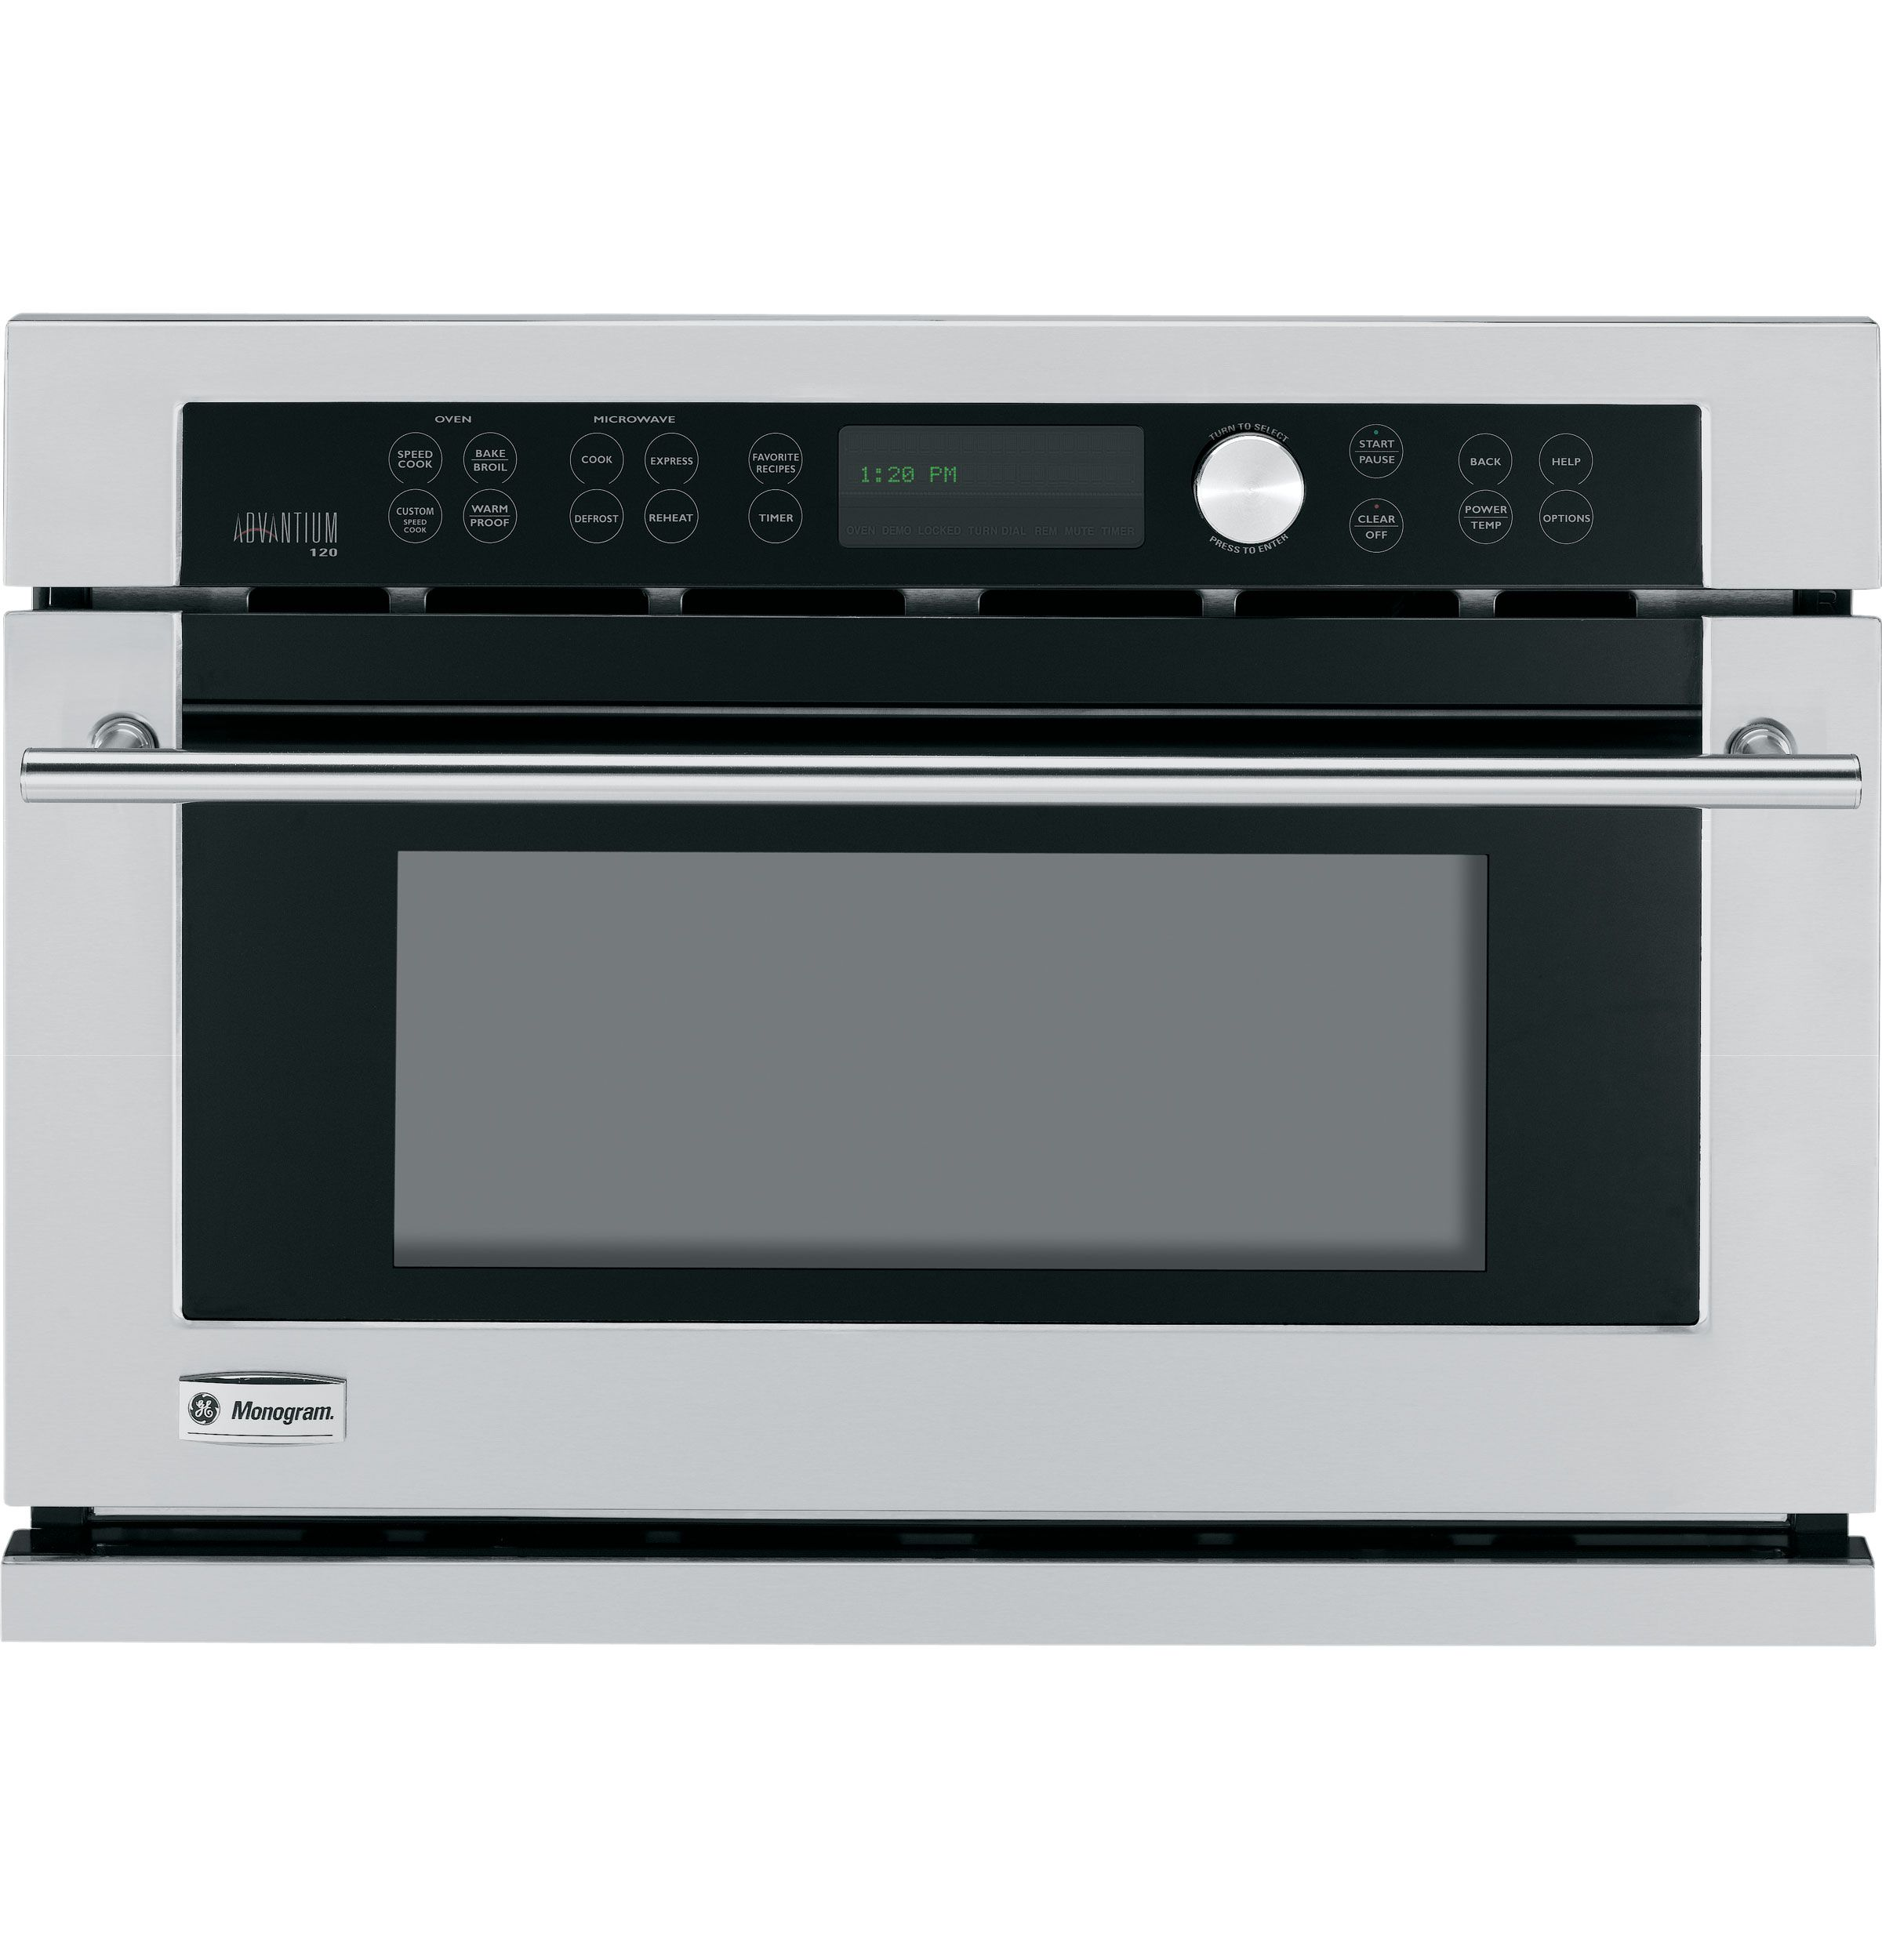 Ge Monogram Kitchen Appliances Zsc1001kss Ge Monogram Built In Oven With Advantiumar Speedcook